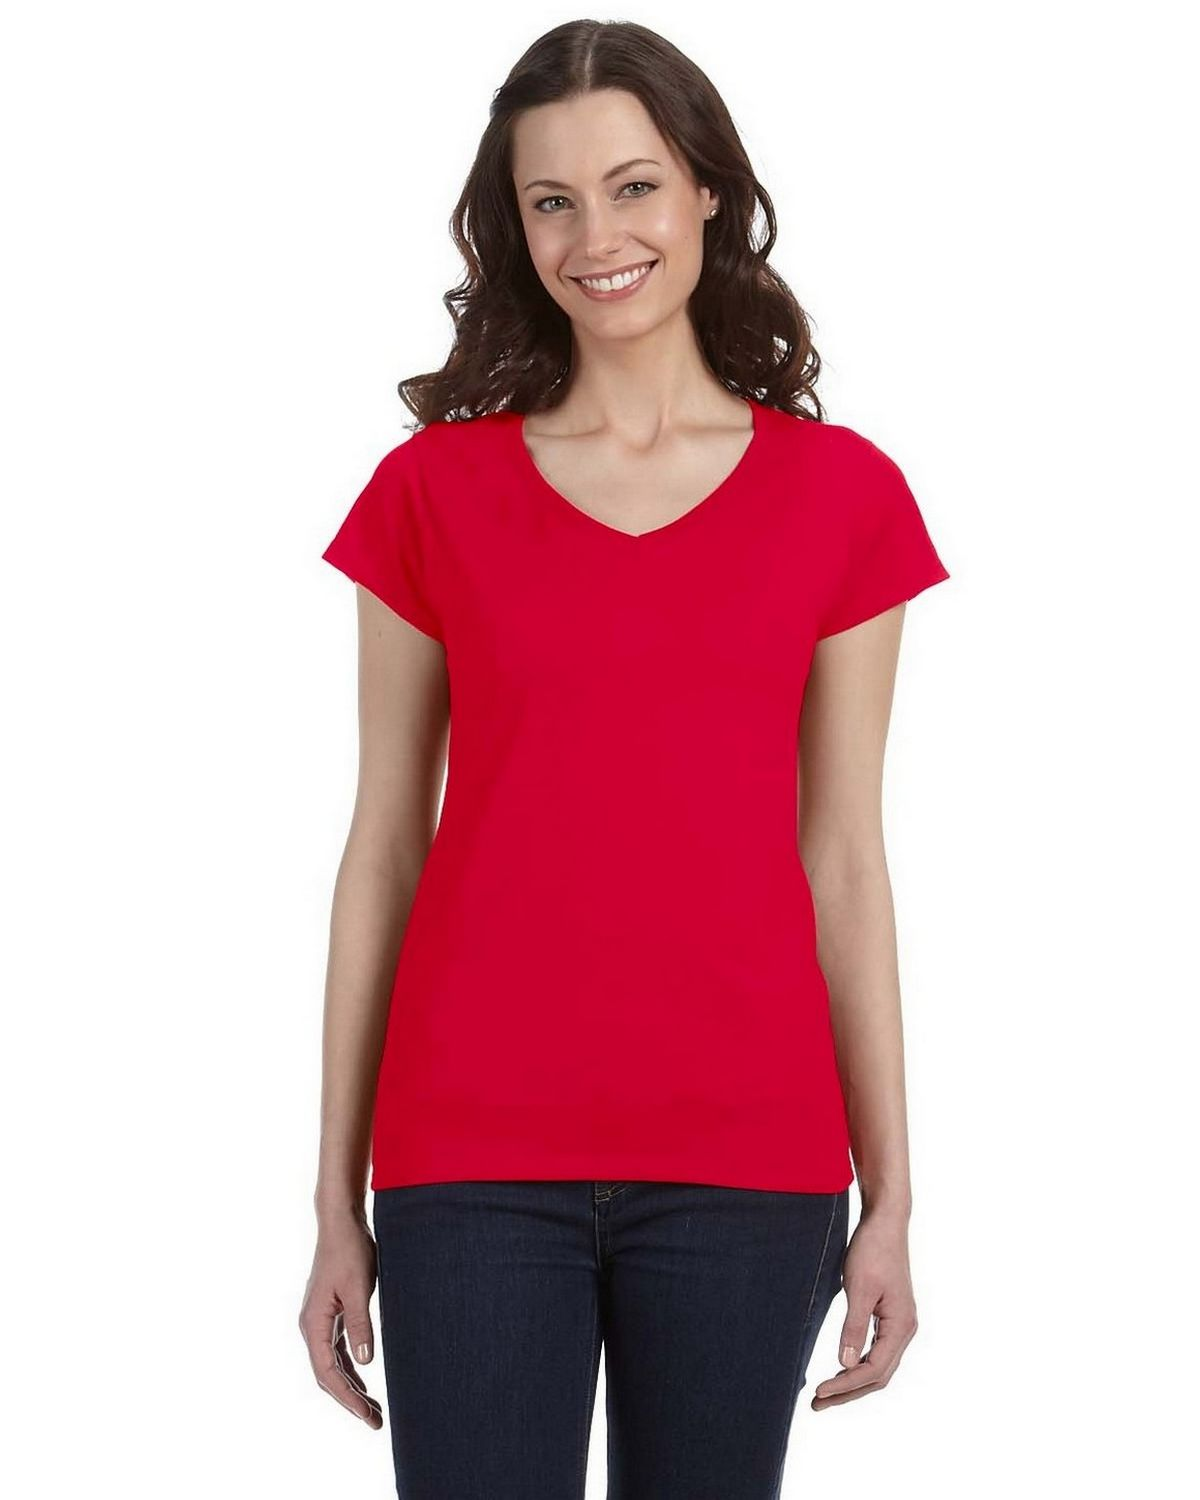 Gildan G64VL Ladies SoftStyle Junior Fit T Shirt - Cherry Red - M G64VL